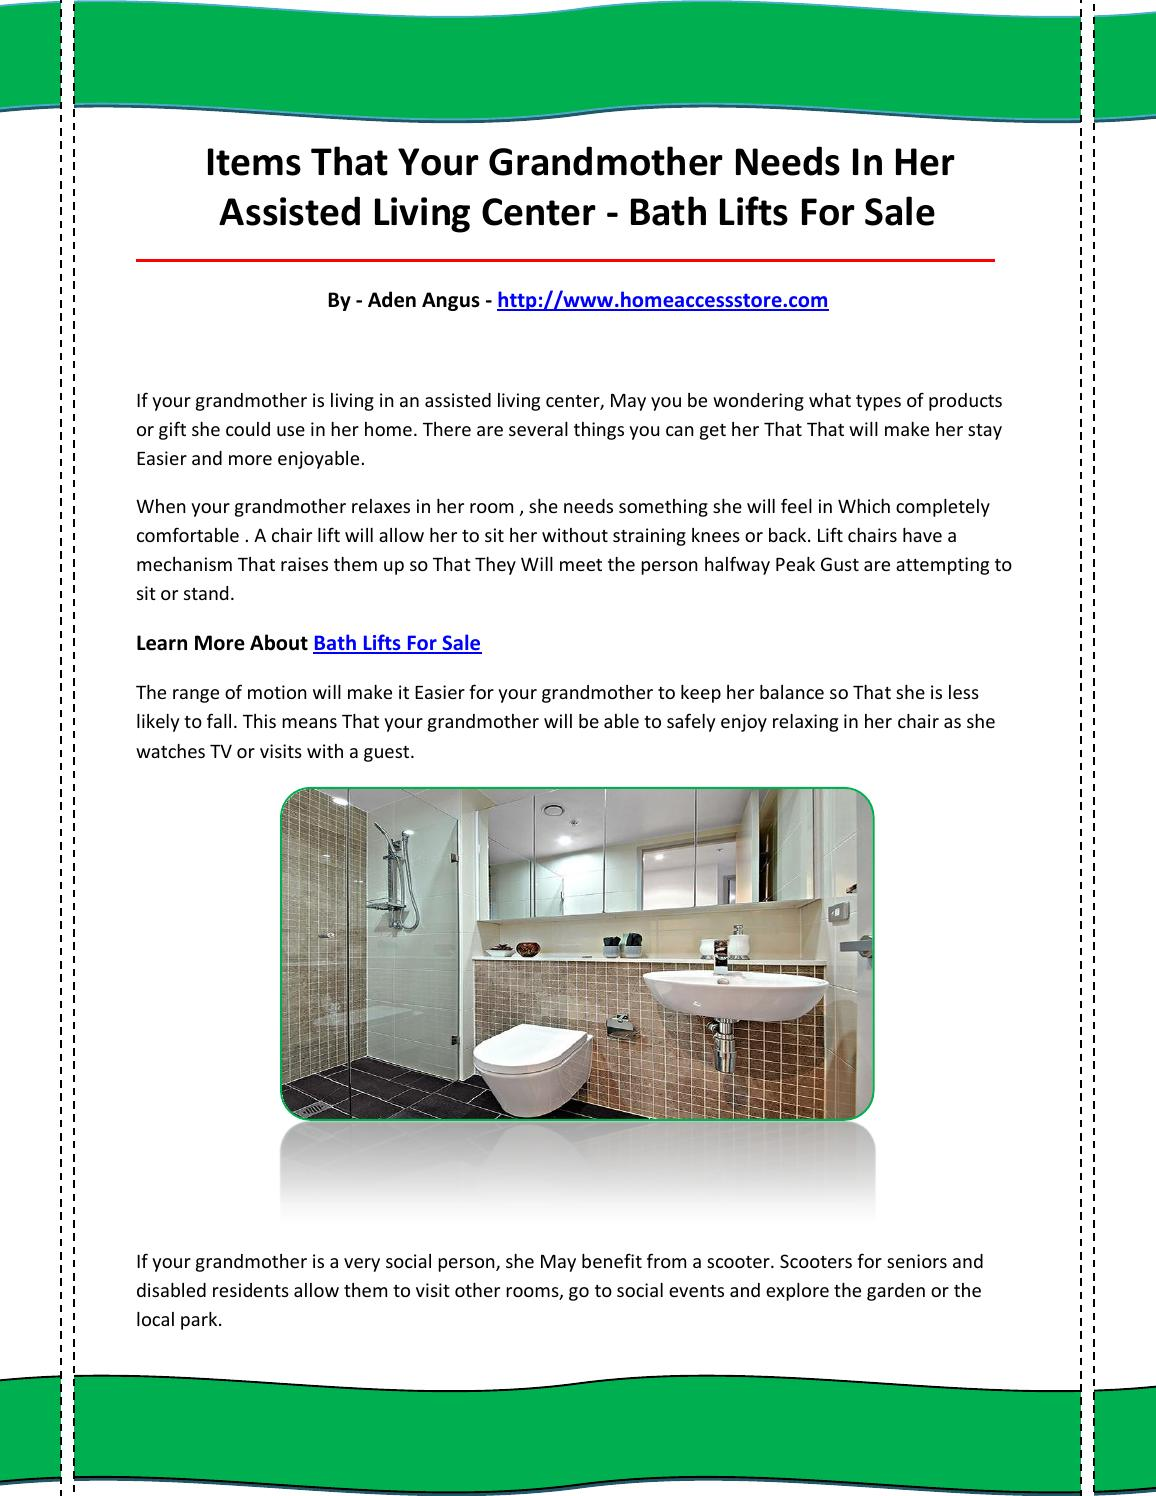 Bath lifts for sale by bathliftsforsale27 - issuu